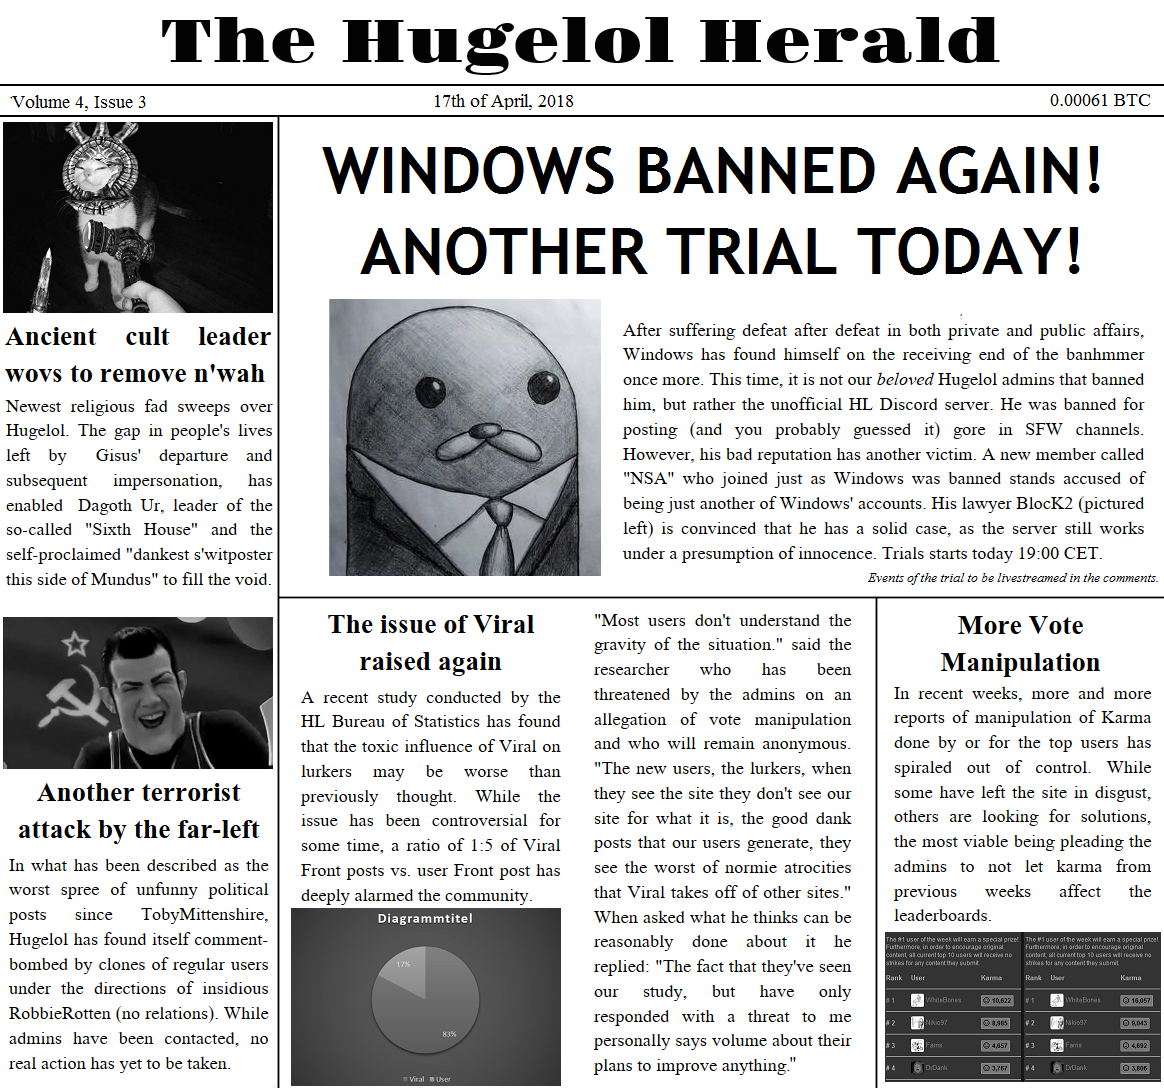 Sorry for the late edition, the trial is already under session